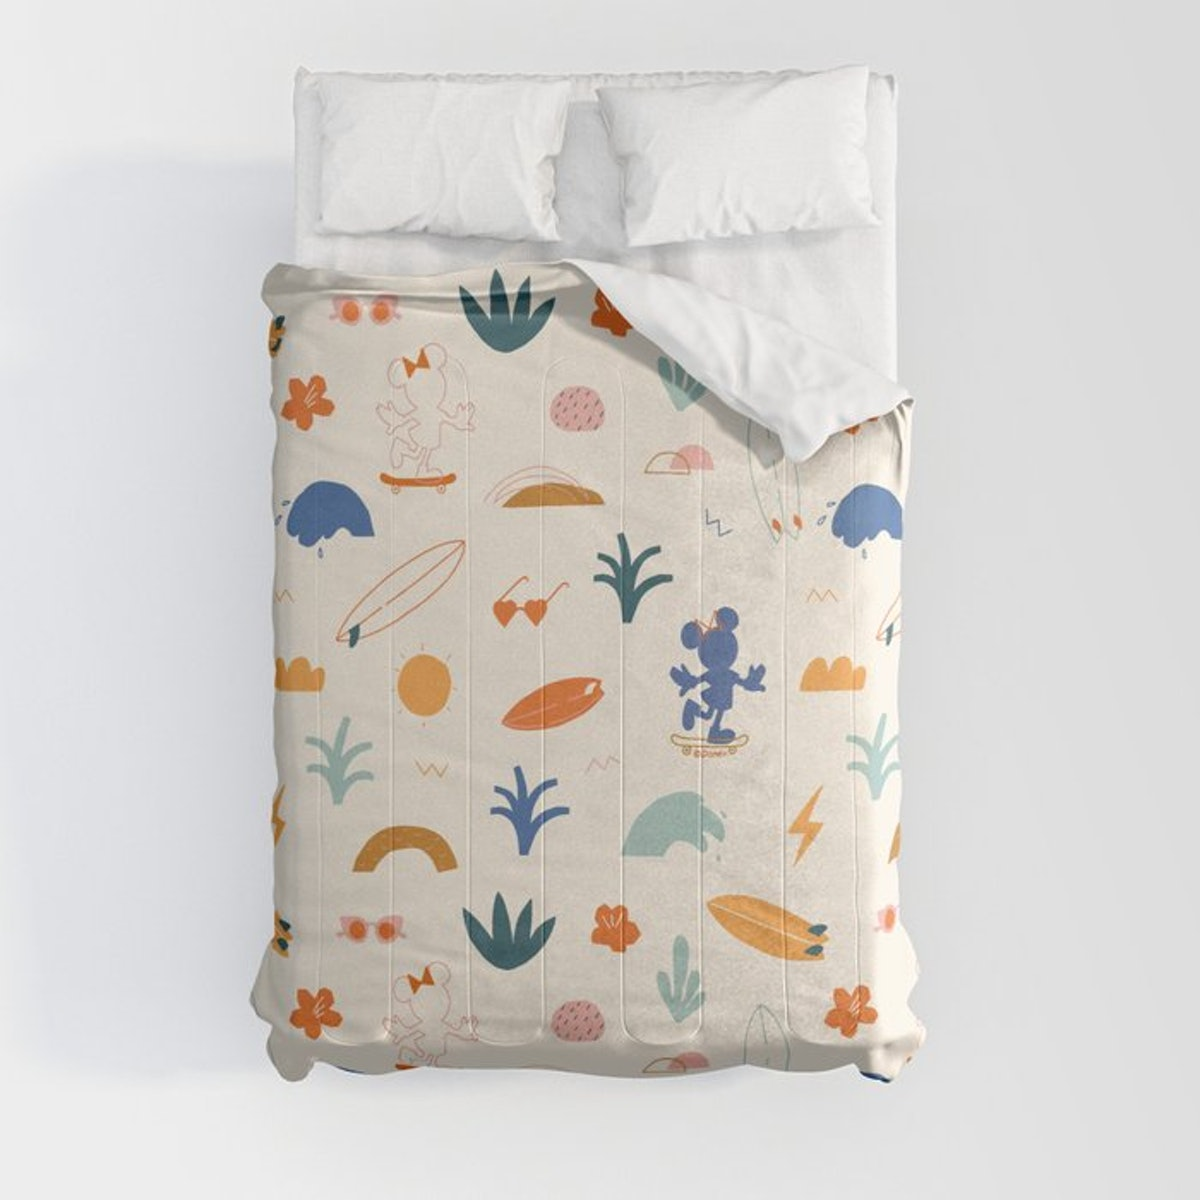 The Society6 x Disney Minnie Mouse Collection features adorable comforters.